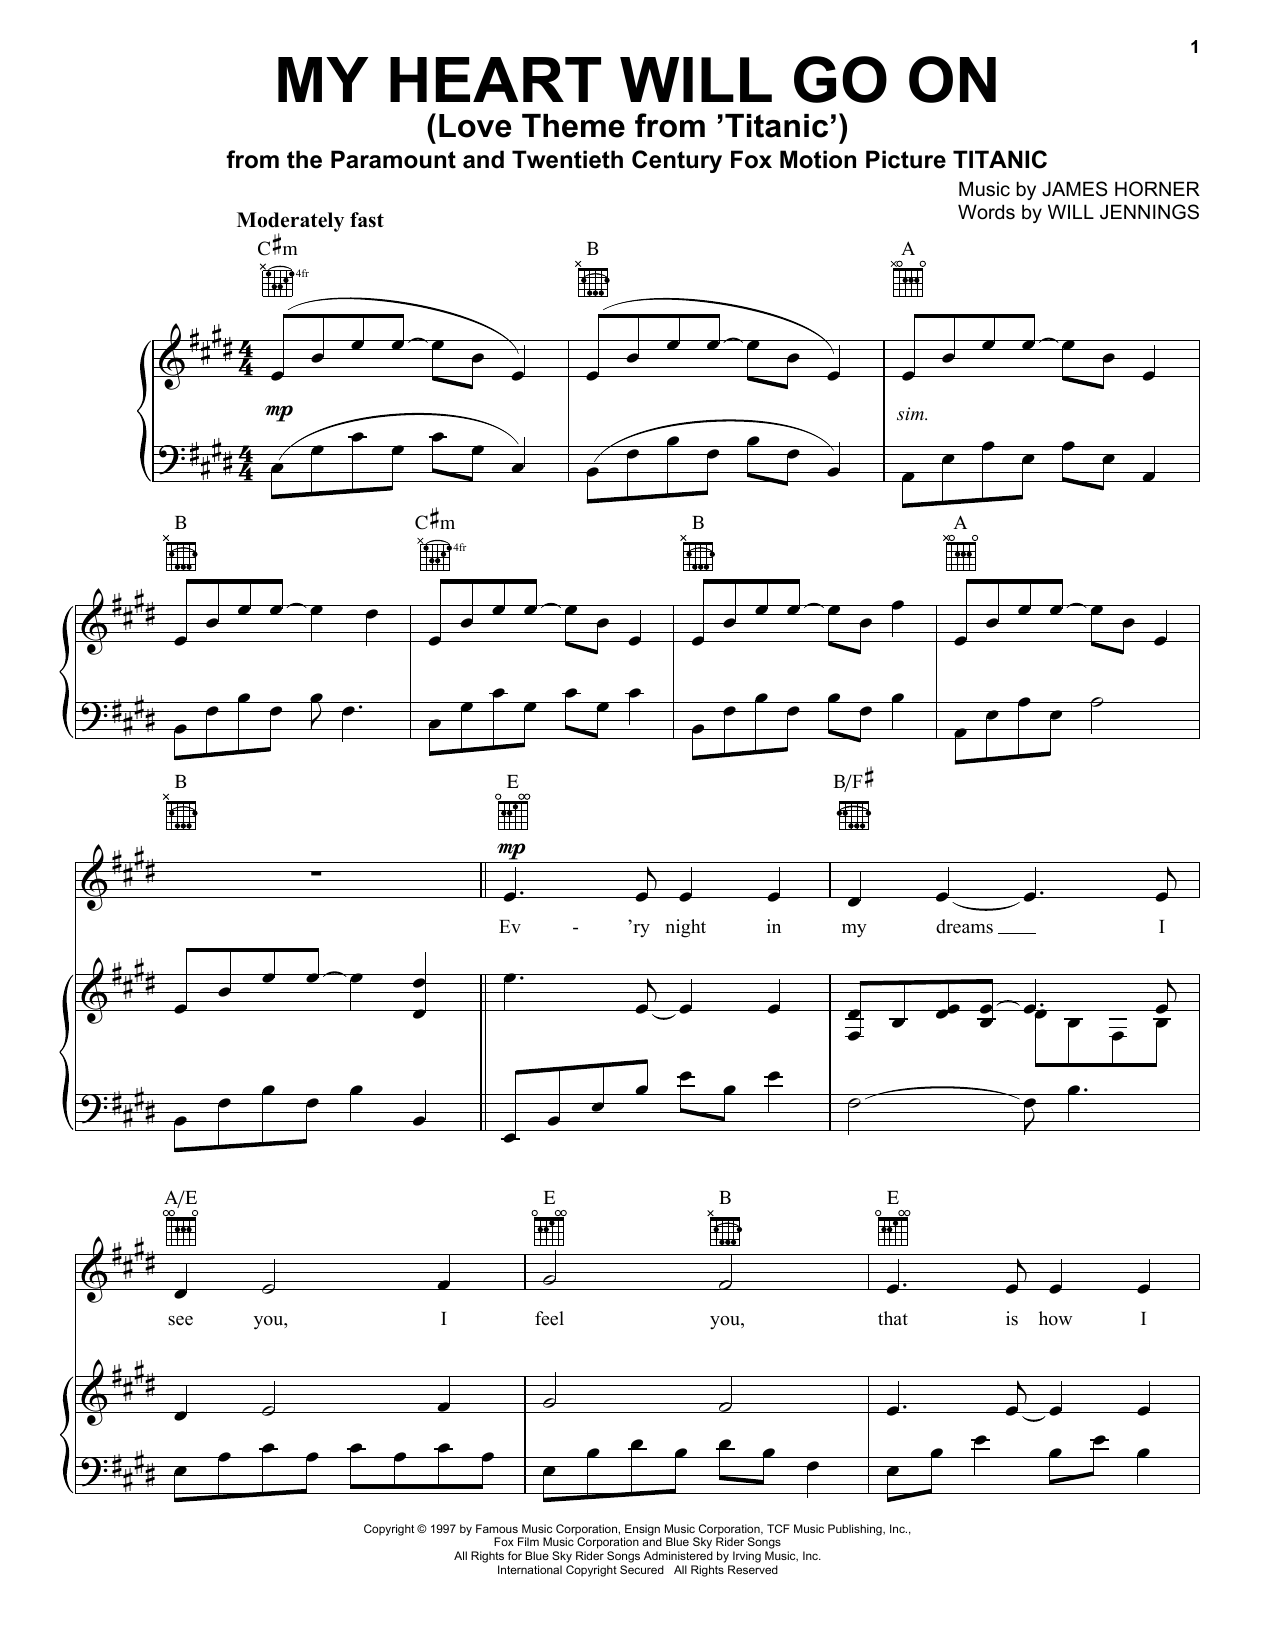 Celine Dion My Heart Will Go On Love Theme From Titanic Sheet